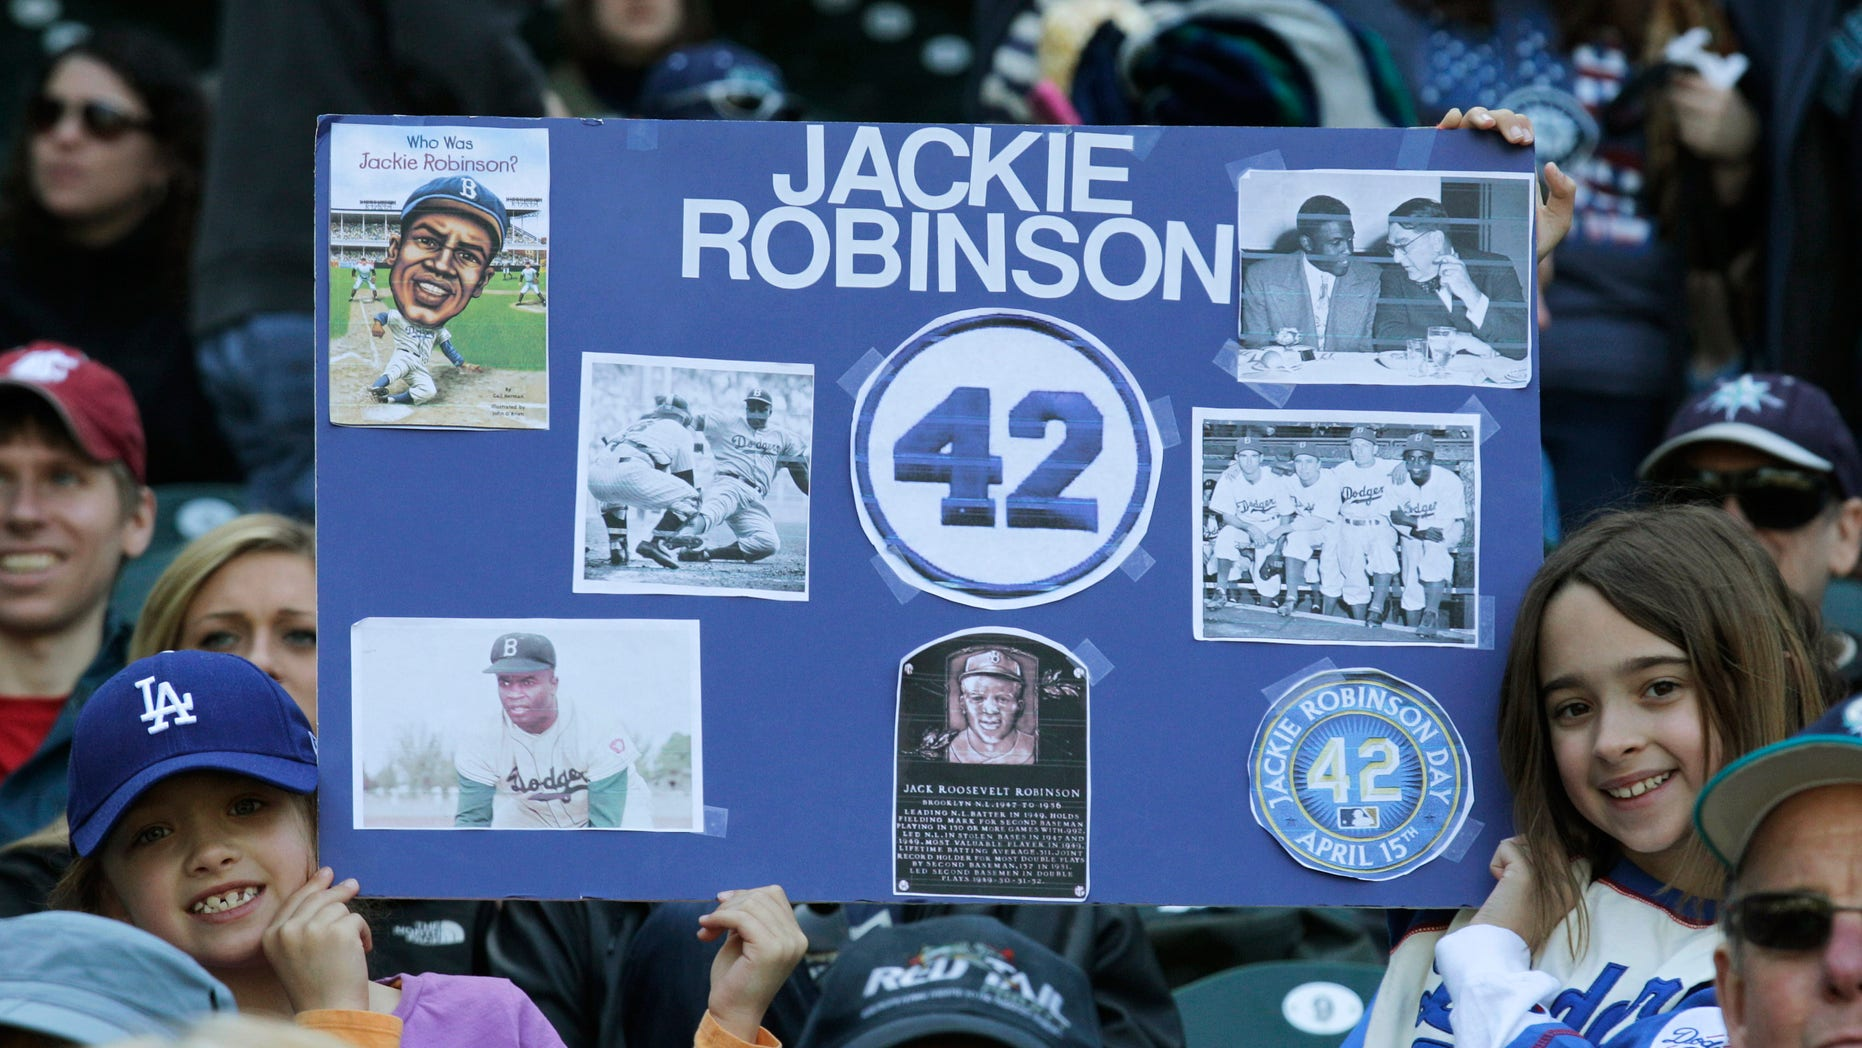 April 15: Young fans pay tribute to Jackie Robinson prior to a MLB baseball game between the Seattle Mariners and the Oakland Athletics in Seattle.